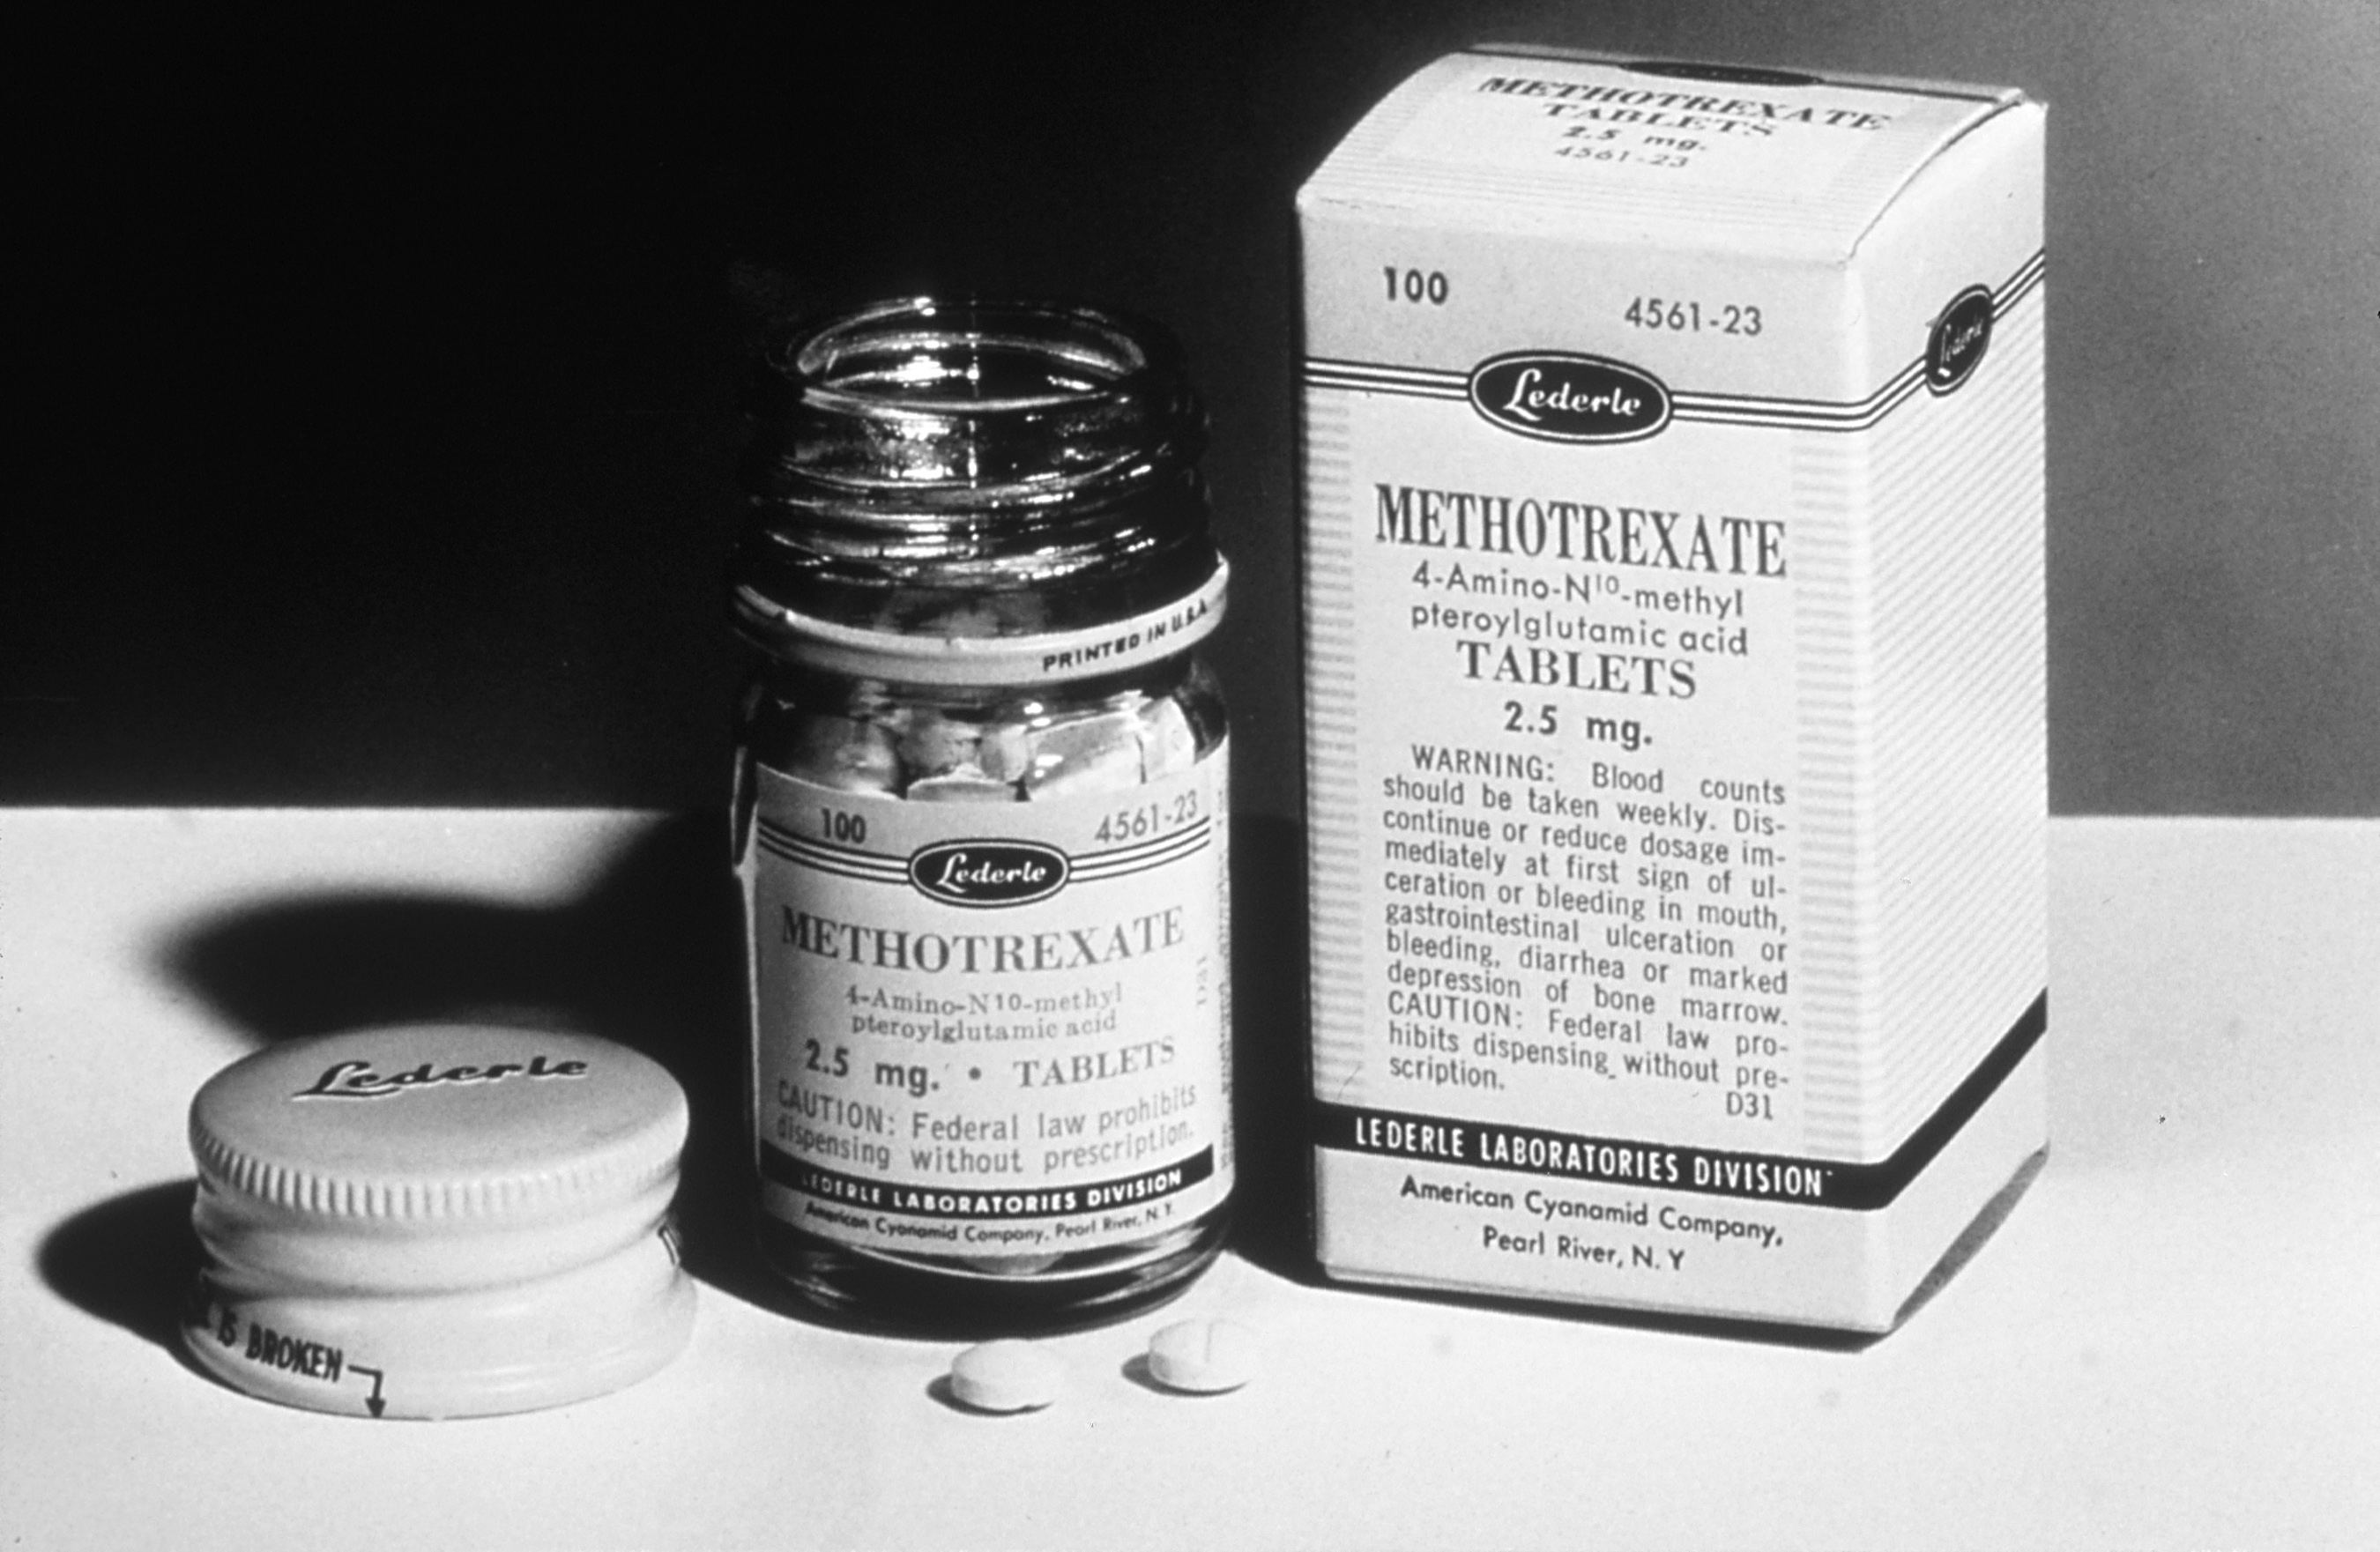 Methotrexate packaging.